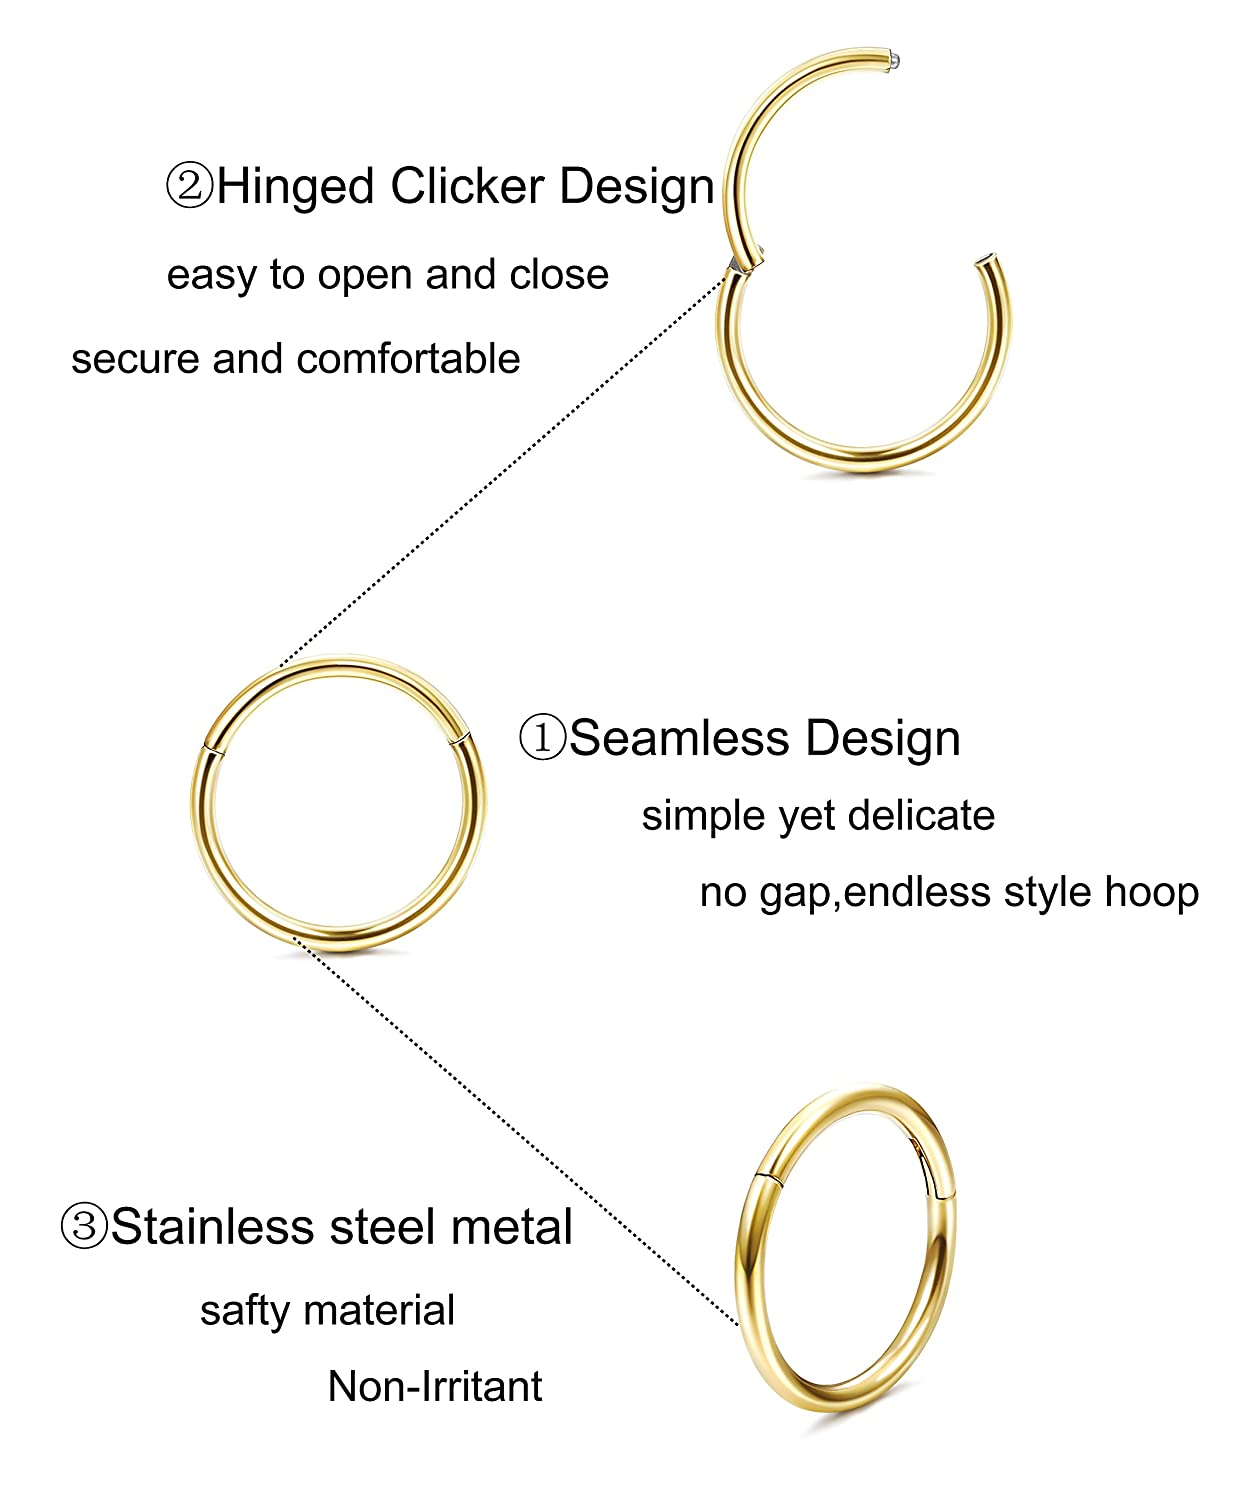 LOYALLOOK 18-20G Stainless Steel Seamless Septum Clicker Ring Easy Use Septum Lip Nose Hoop Ring Helix Daith Cartilage Tragus Improved DGP0015C